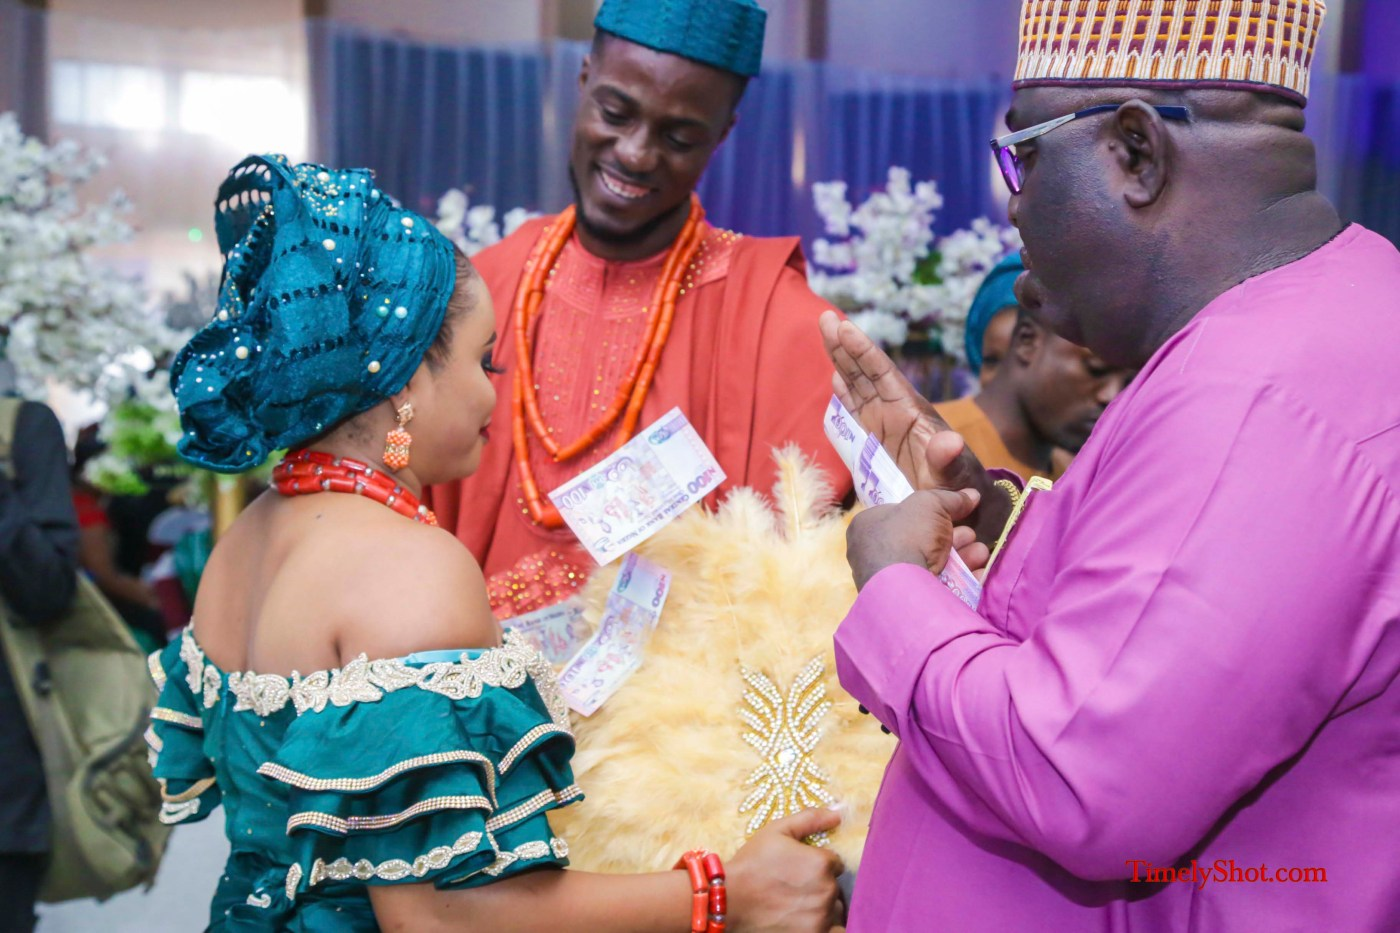 Marrying a Nigerian Bride as a Transactional Affair, and a Society That Prioritise Money Over Morals and Values